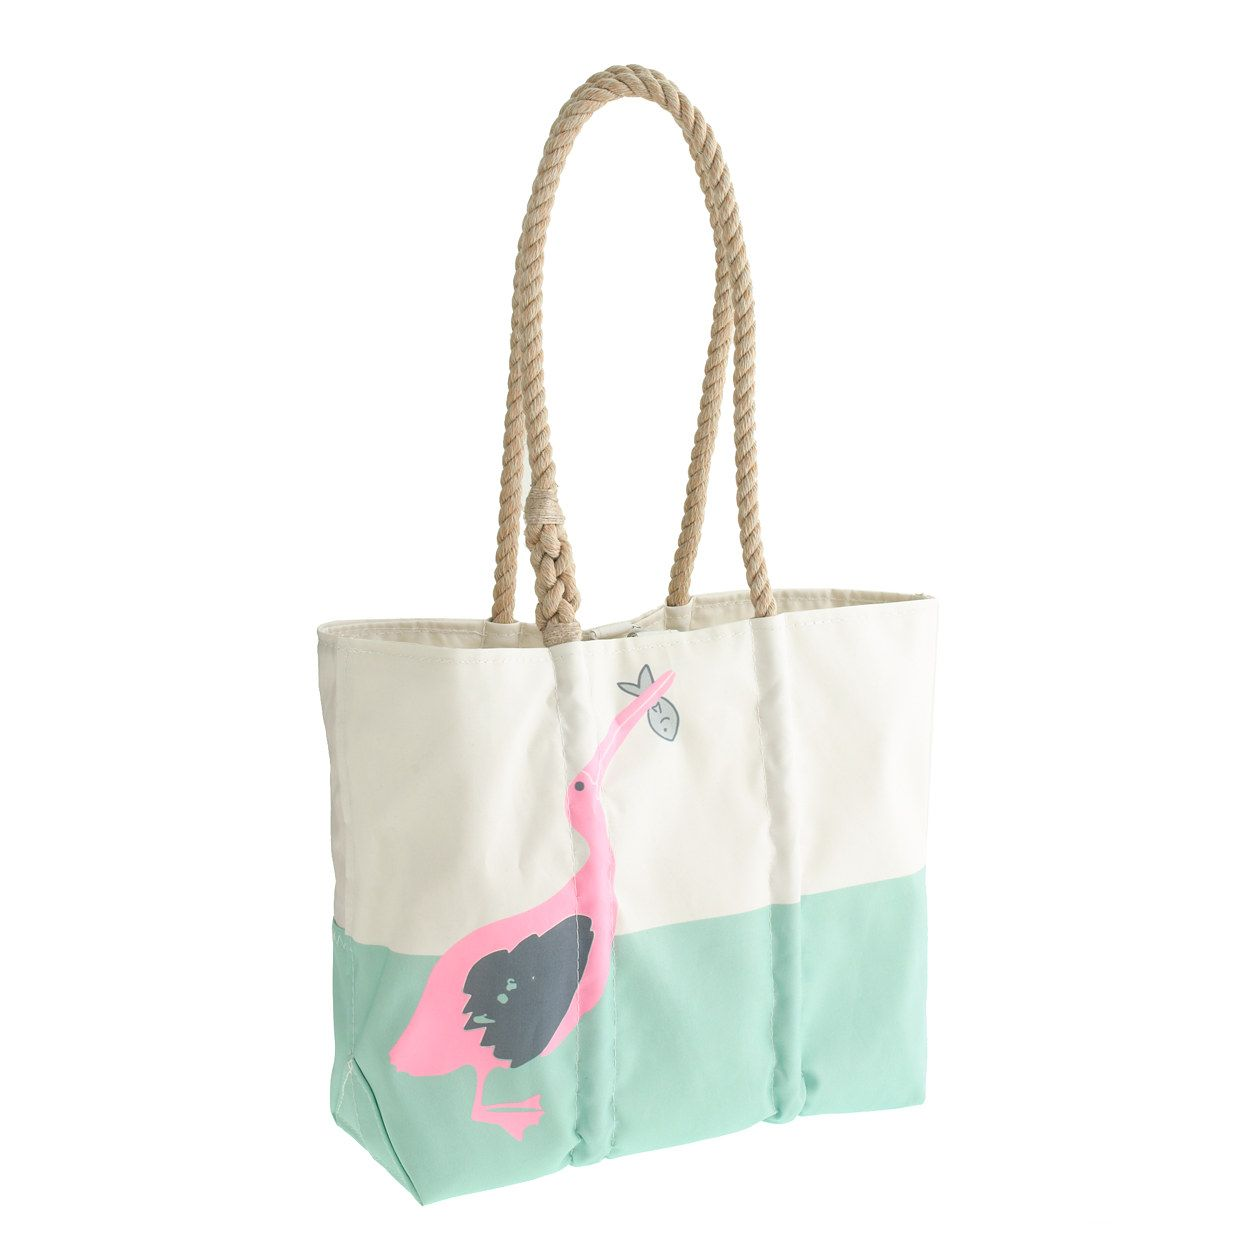 Sea Bags For J Crew Baby Tote Toys